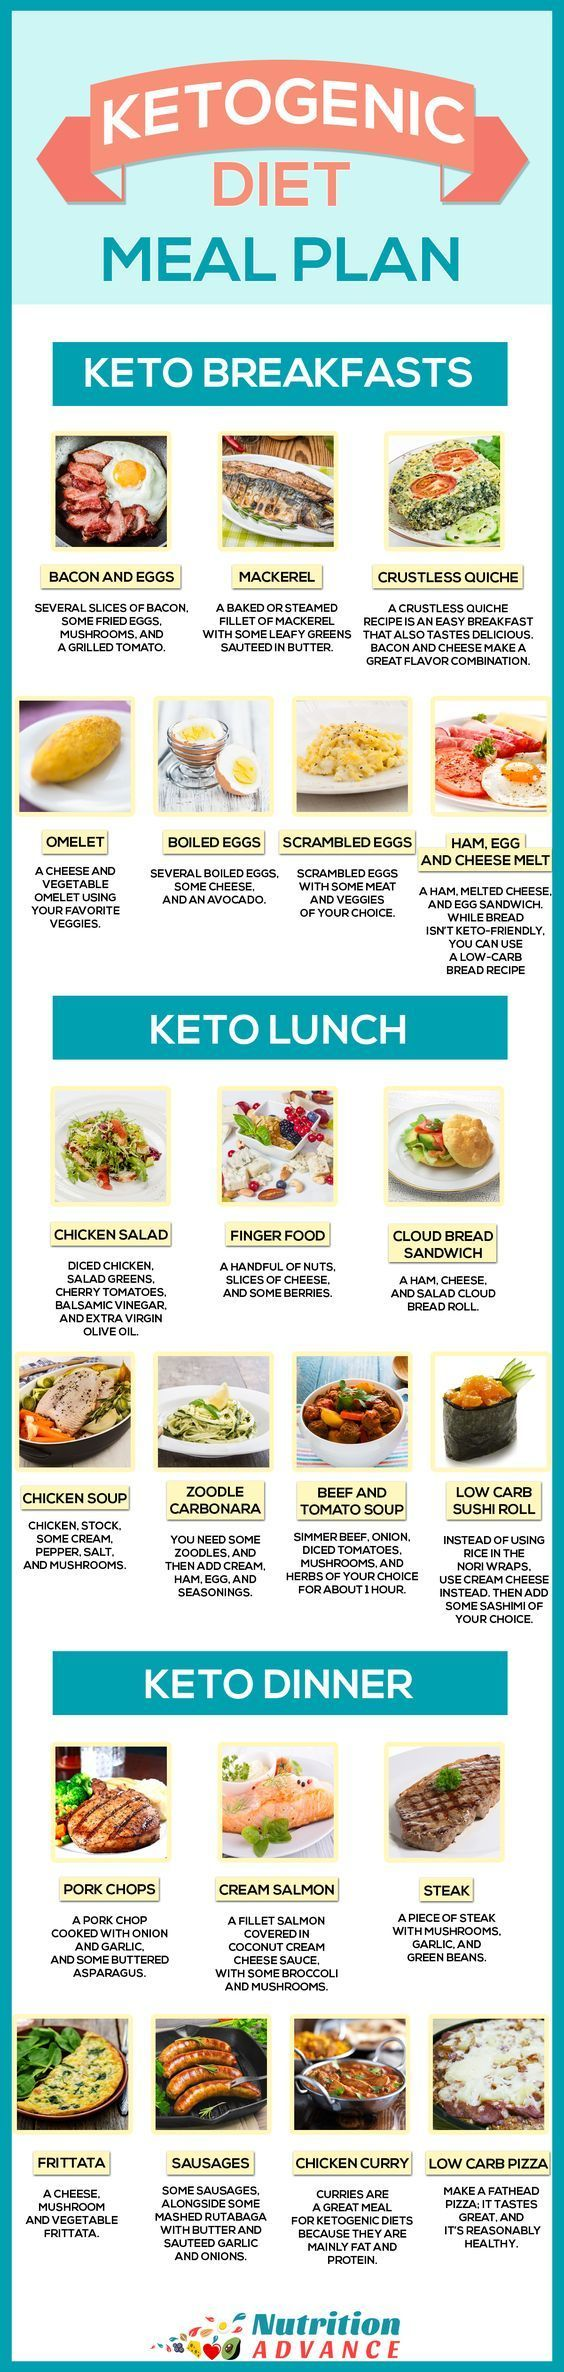 example of a 1200 cal meal keto